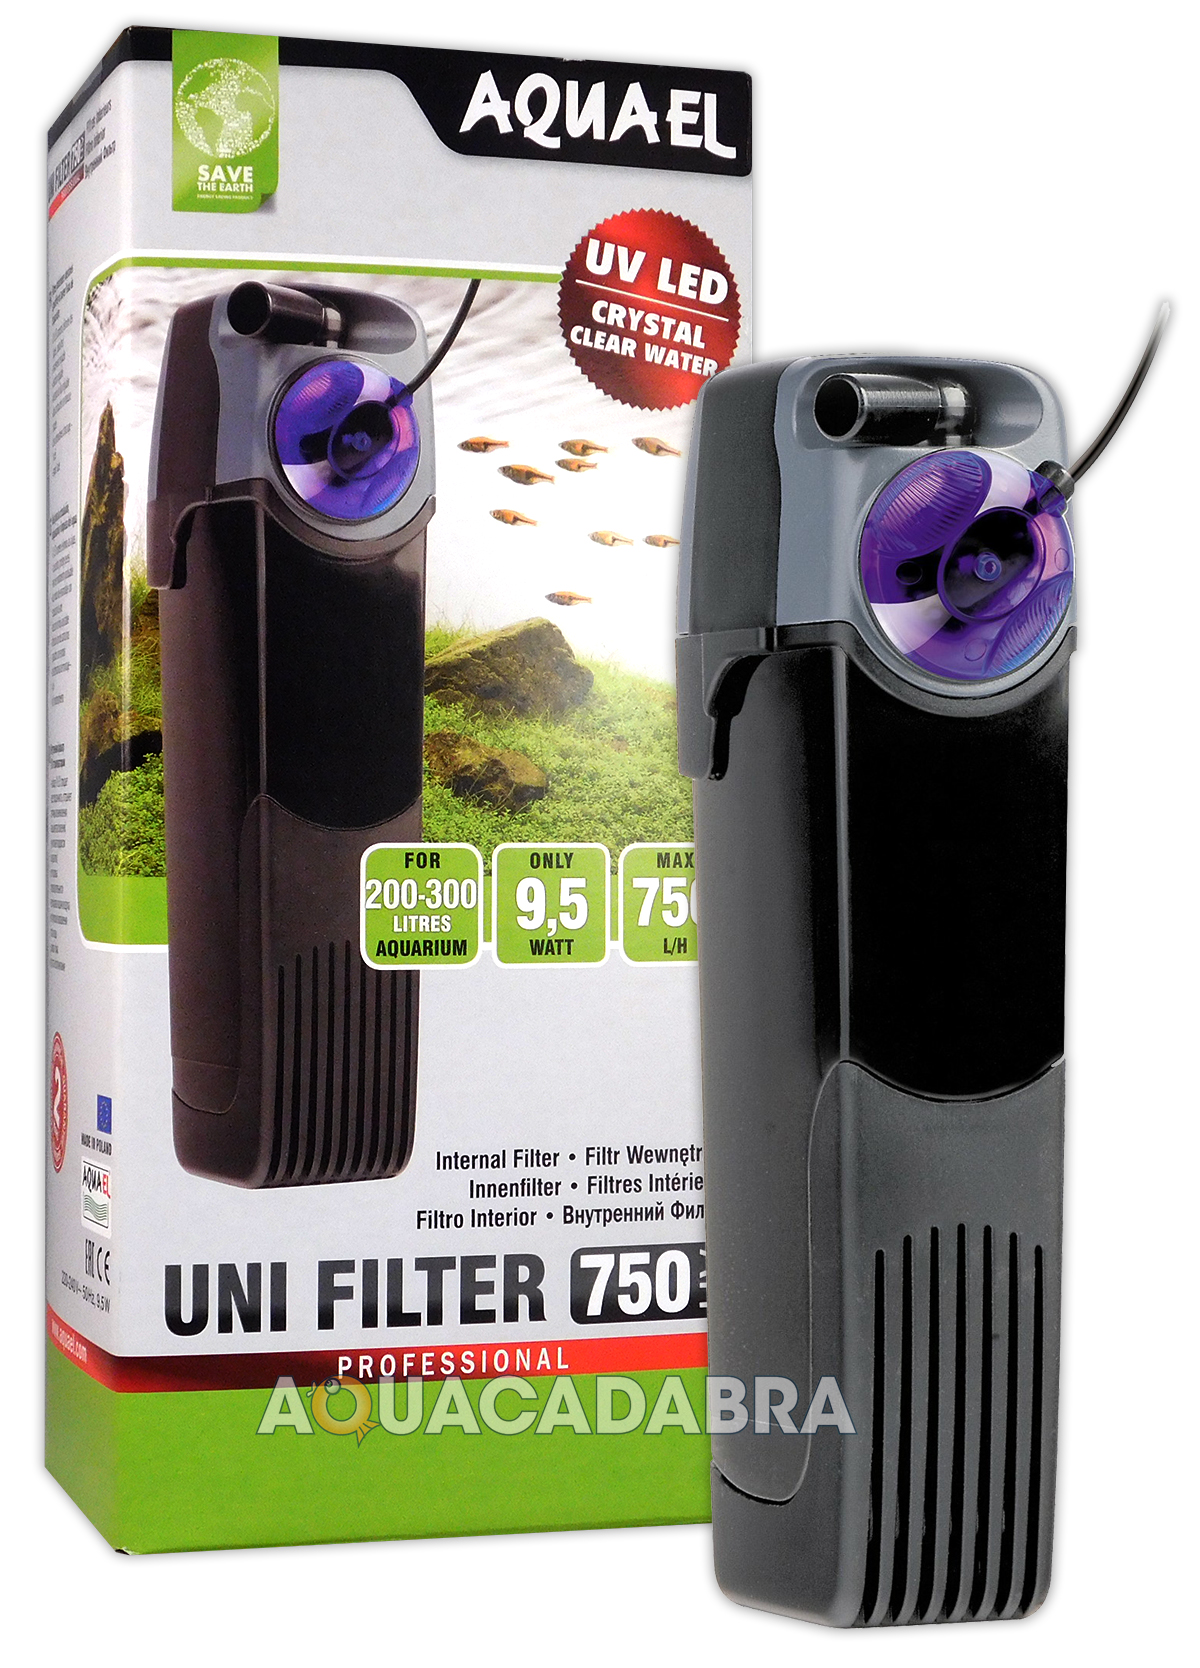 aquael unifilter uv internal filters 500 750 1000 for aquariums ebay. Black Bedroom Furniture Sets. Home Design Ideas